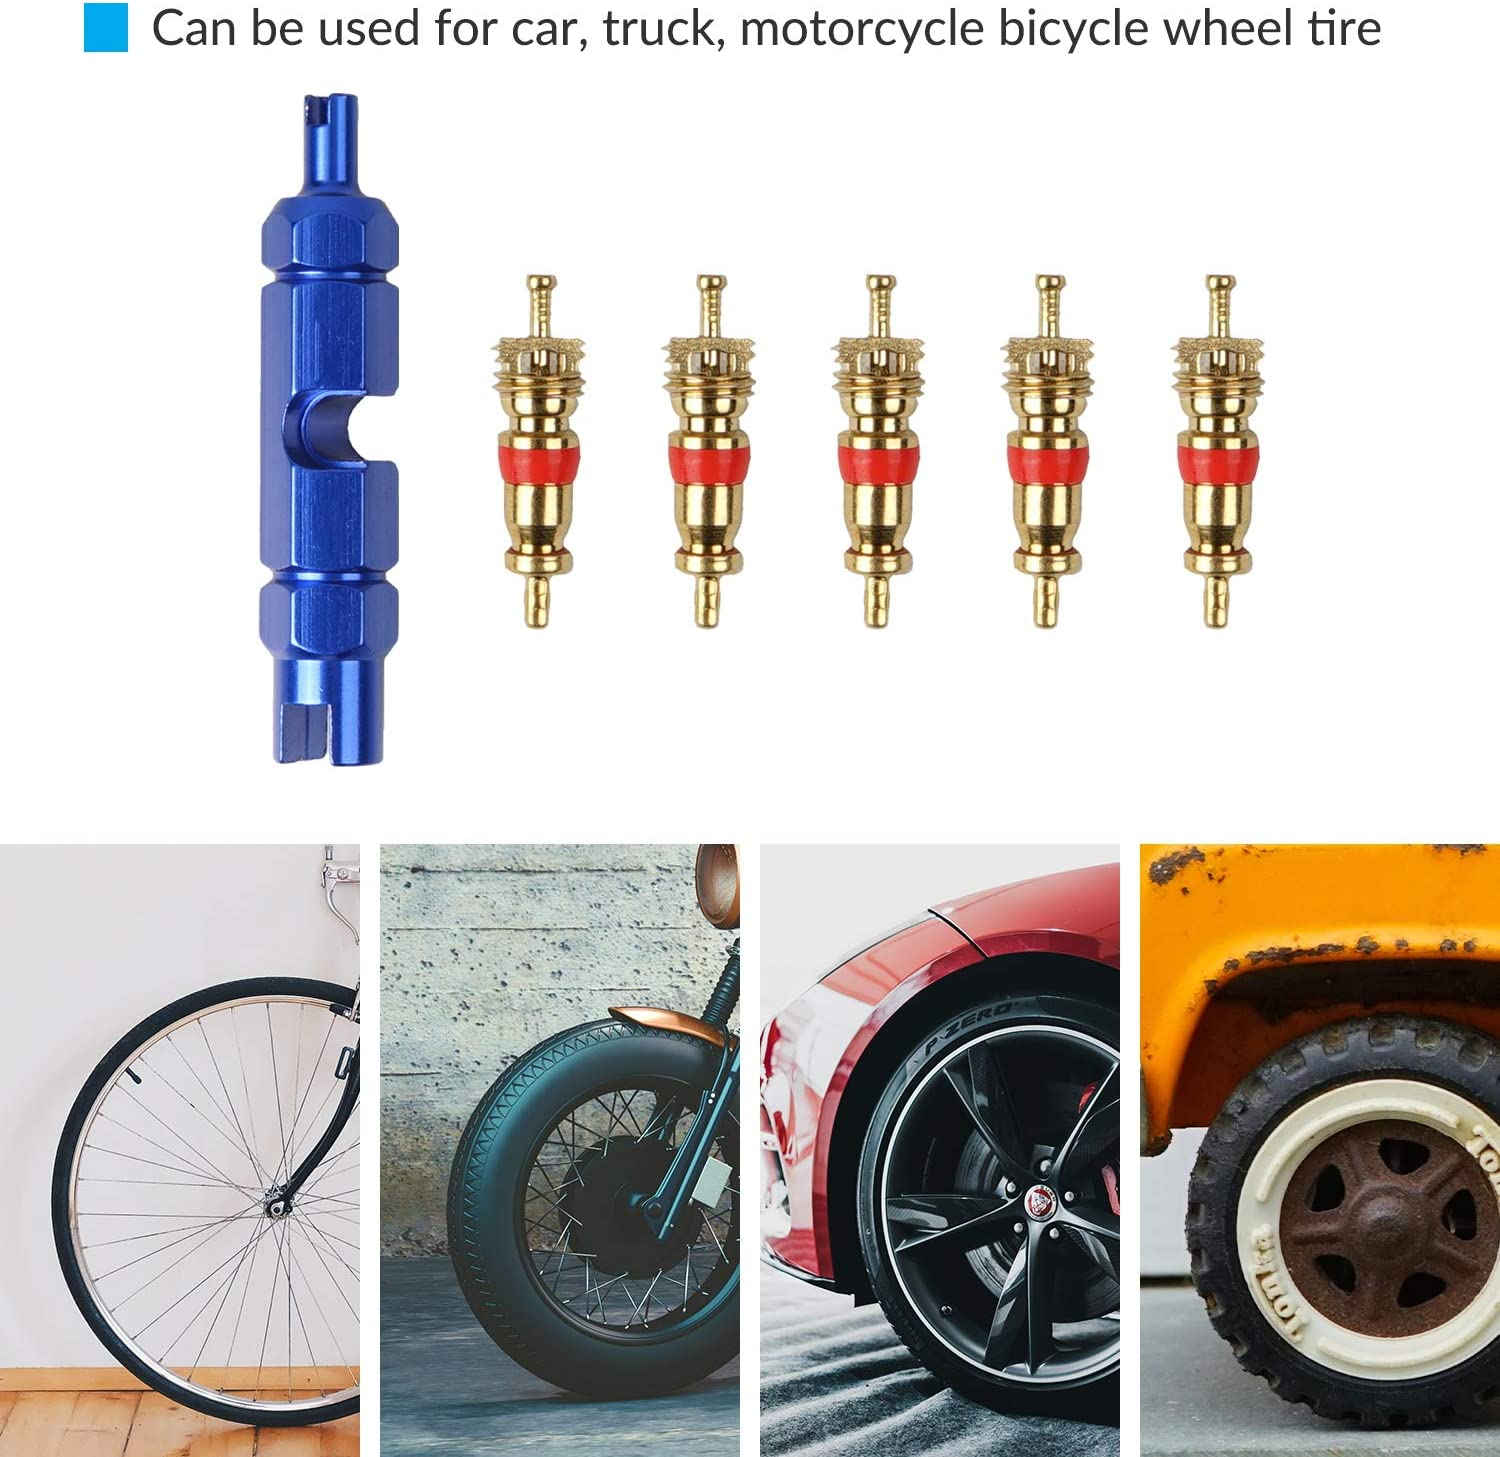 for Valve Core Replacement and Tire Repair YEYIT Bicycle Tire Valve Core Removal Tool for Schrader/& Presta Valve Core Set Screwdriver Disassembly Wrench Repair Tool